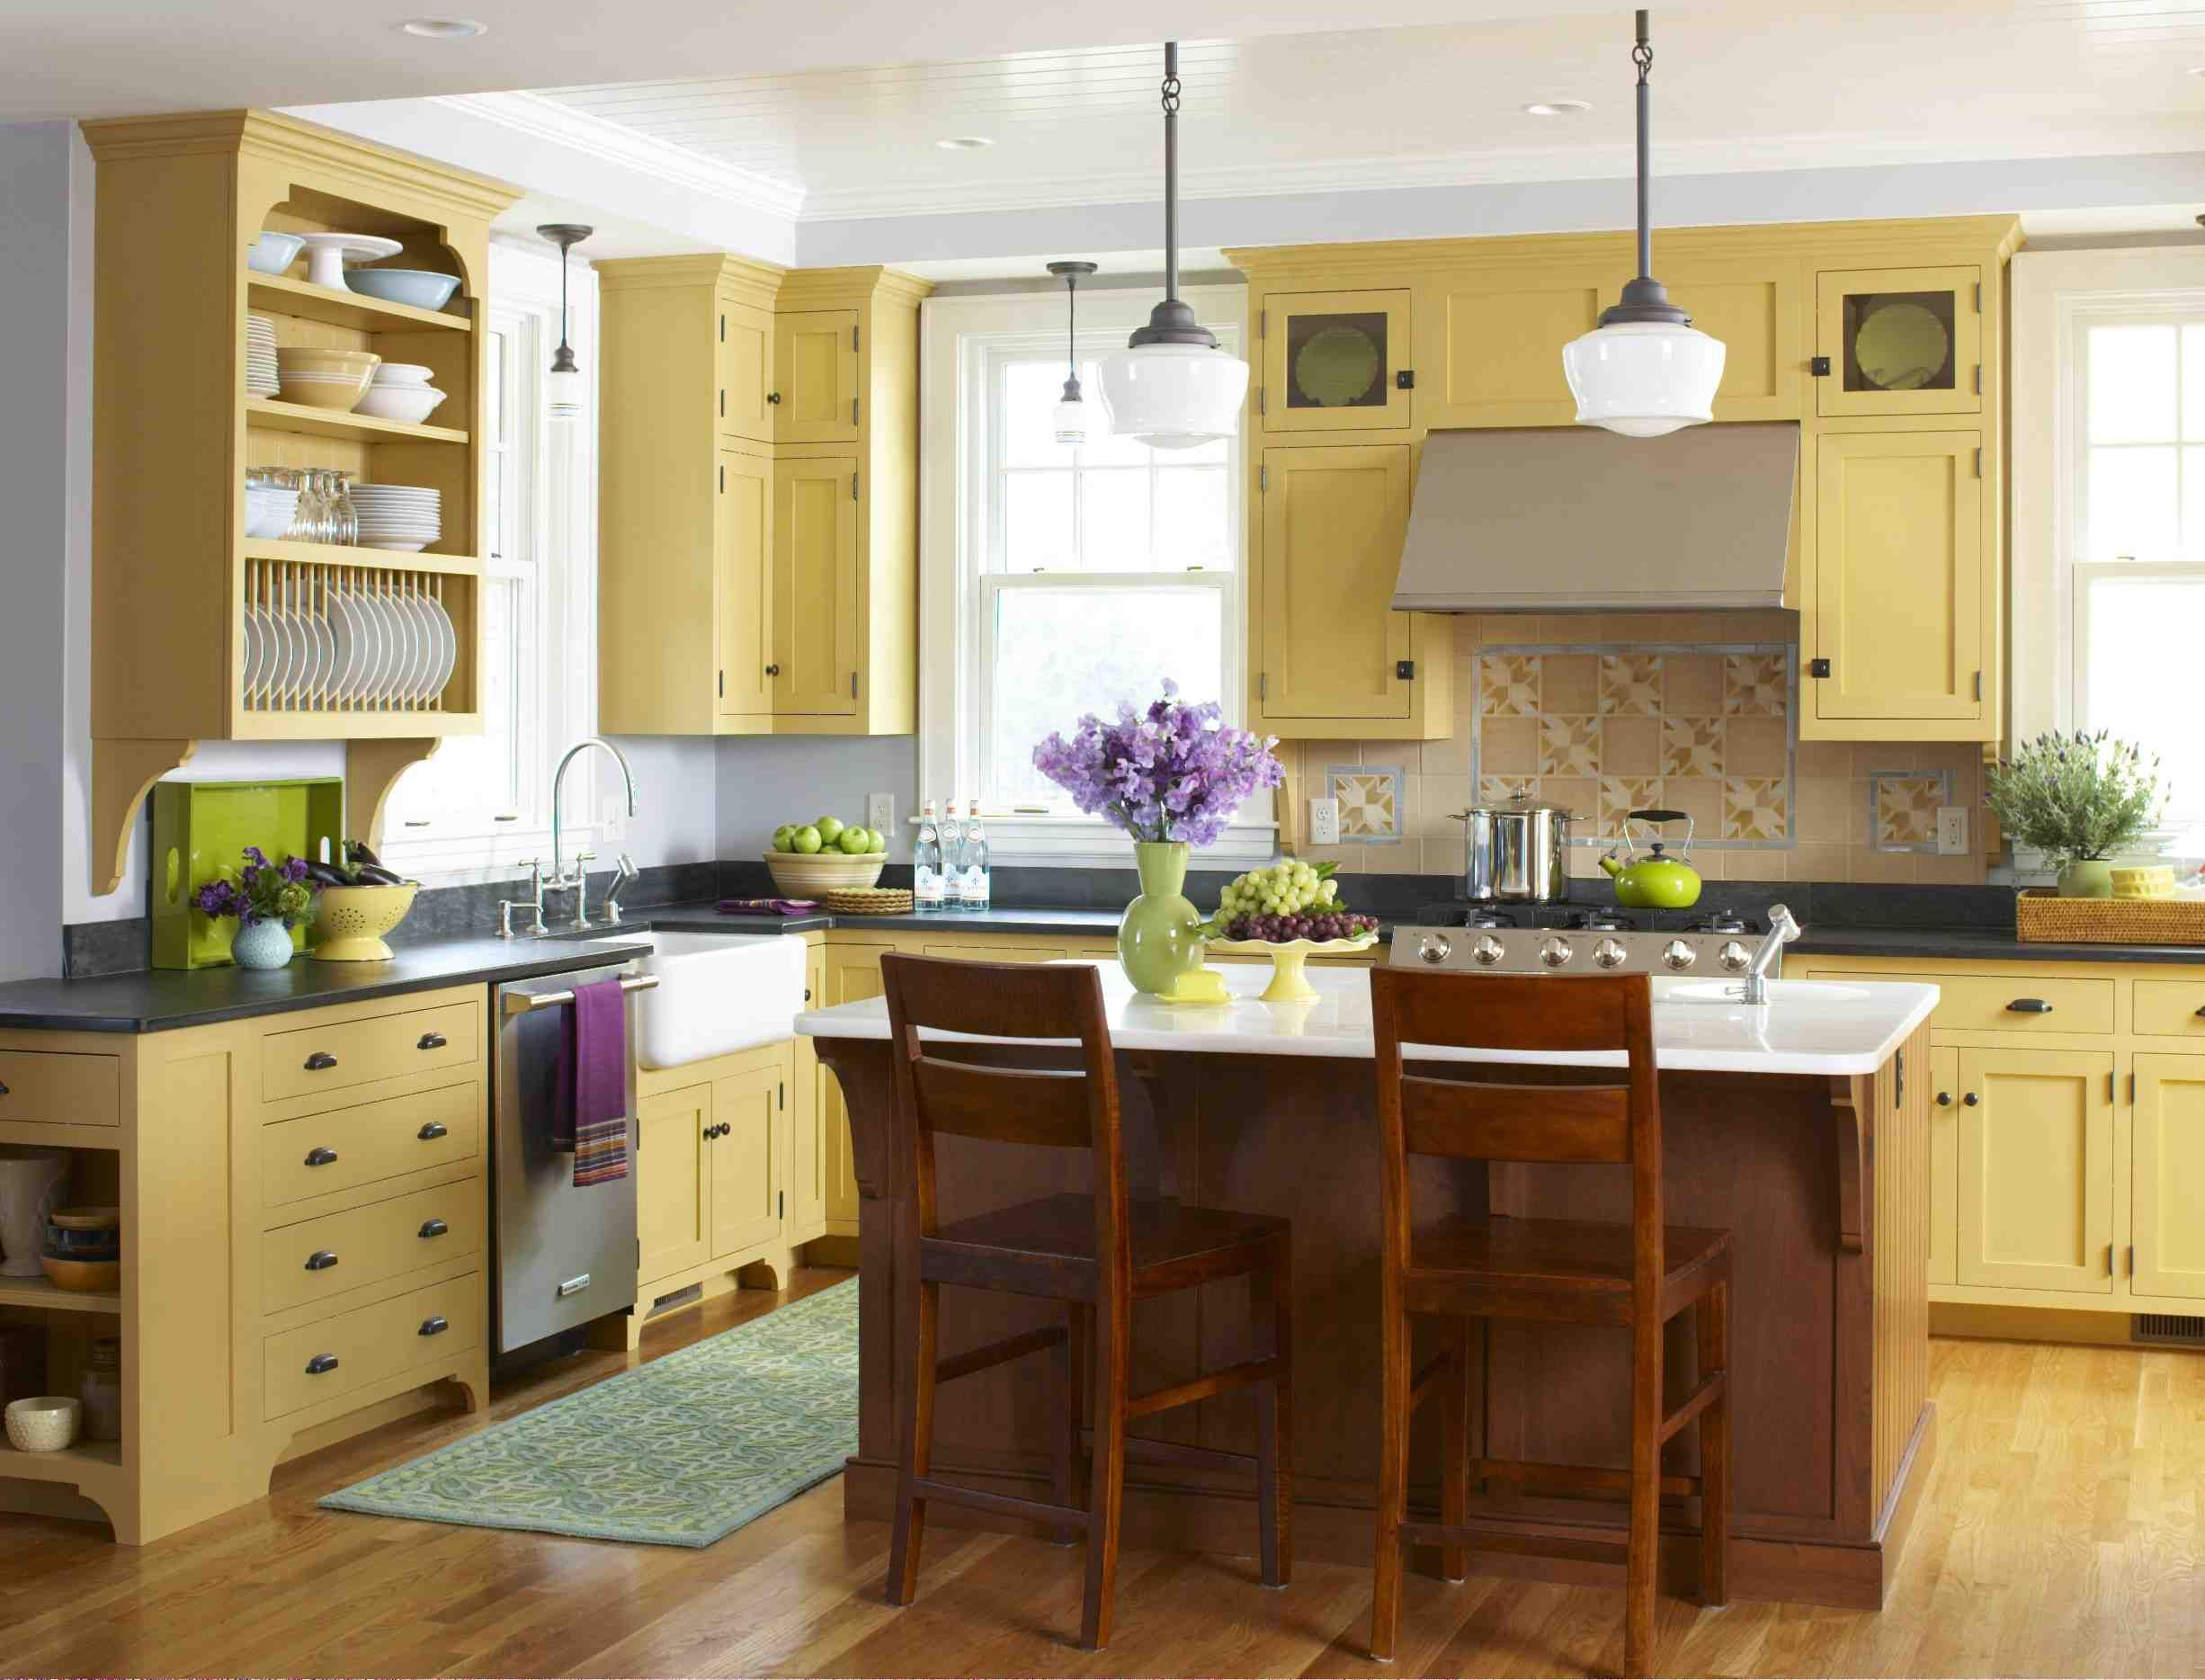 style archive mellow yellow kitchen kitchen design warm kitchen colors kitchen remodel on kitchen remodel yellow walls id=95047